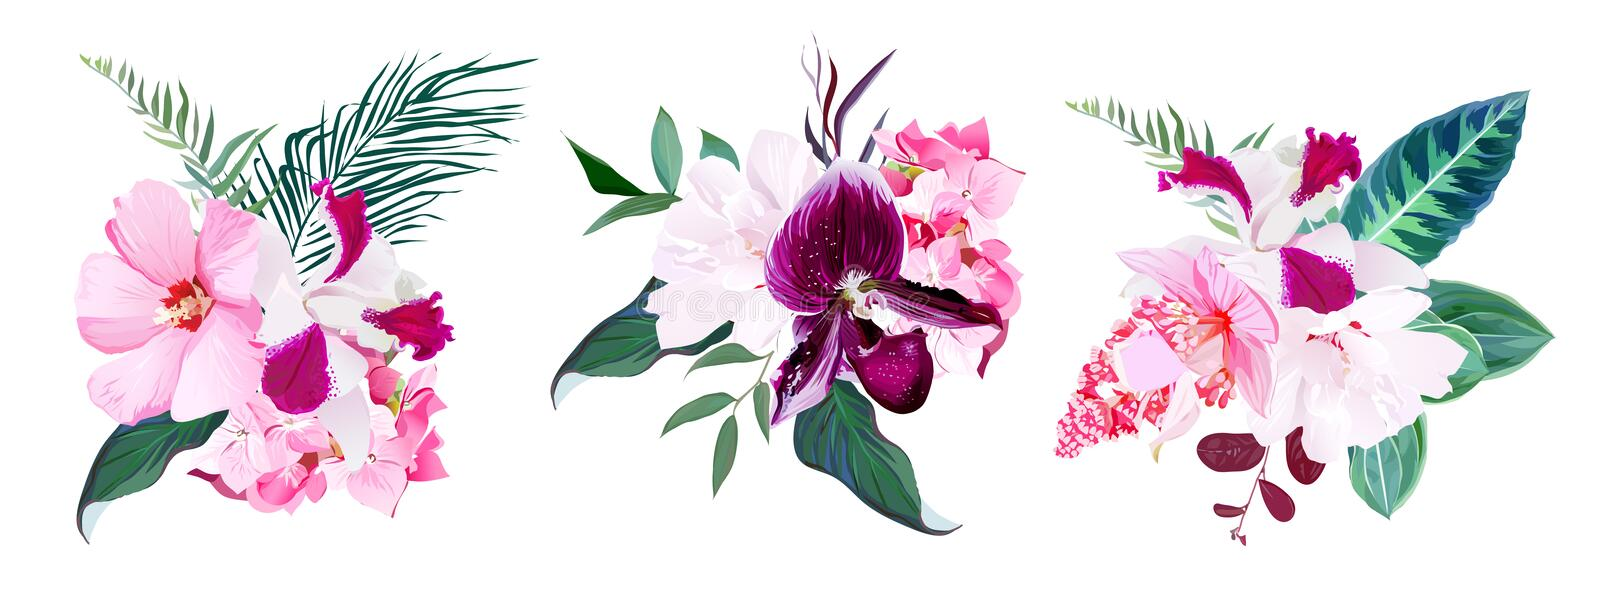 Exotic tropical floral bouquets of hibiscus, medinilla, paphiope vector illustration